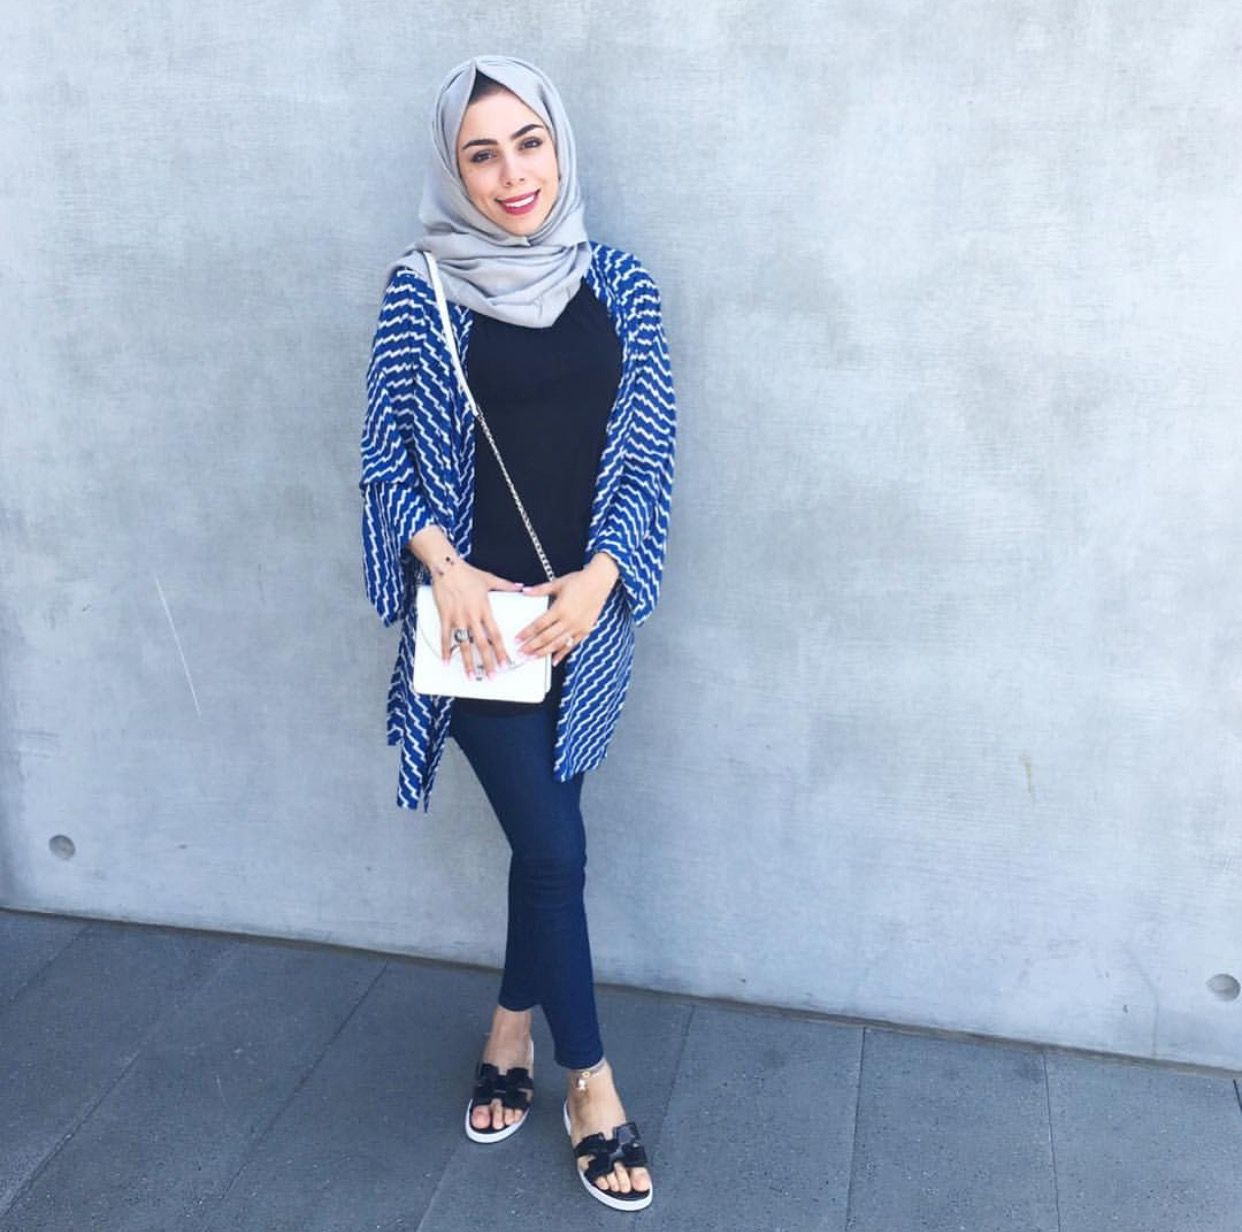 Pin By Just4girls On Hijab Style Pinterest Swag And